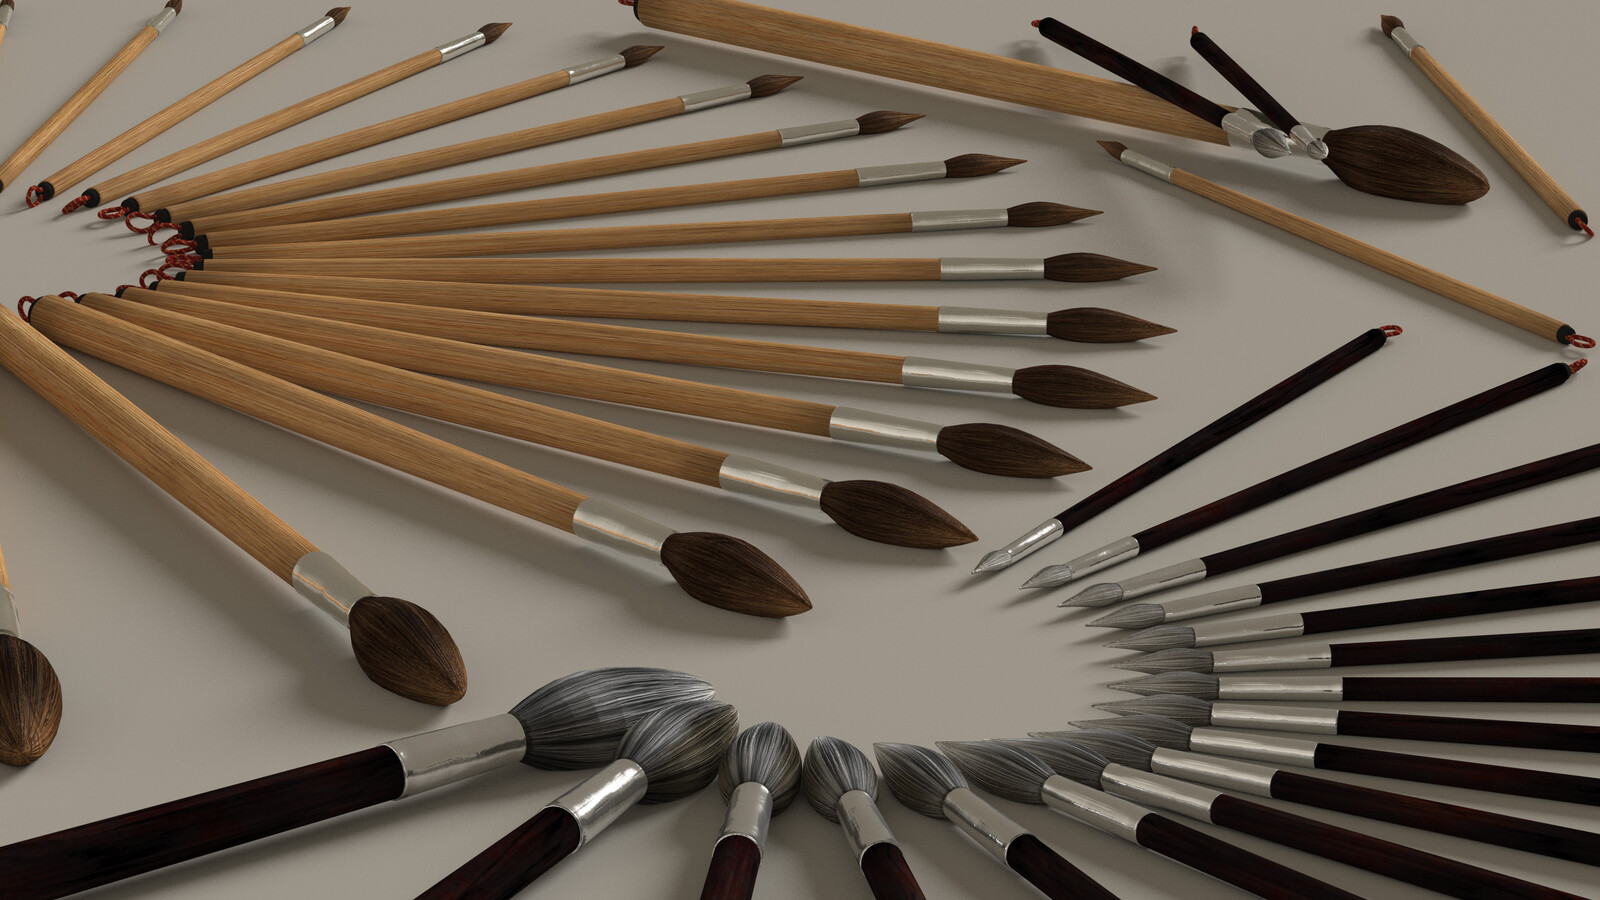 3D Model: Small-Tipped Brushes